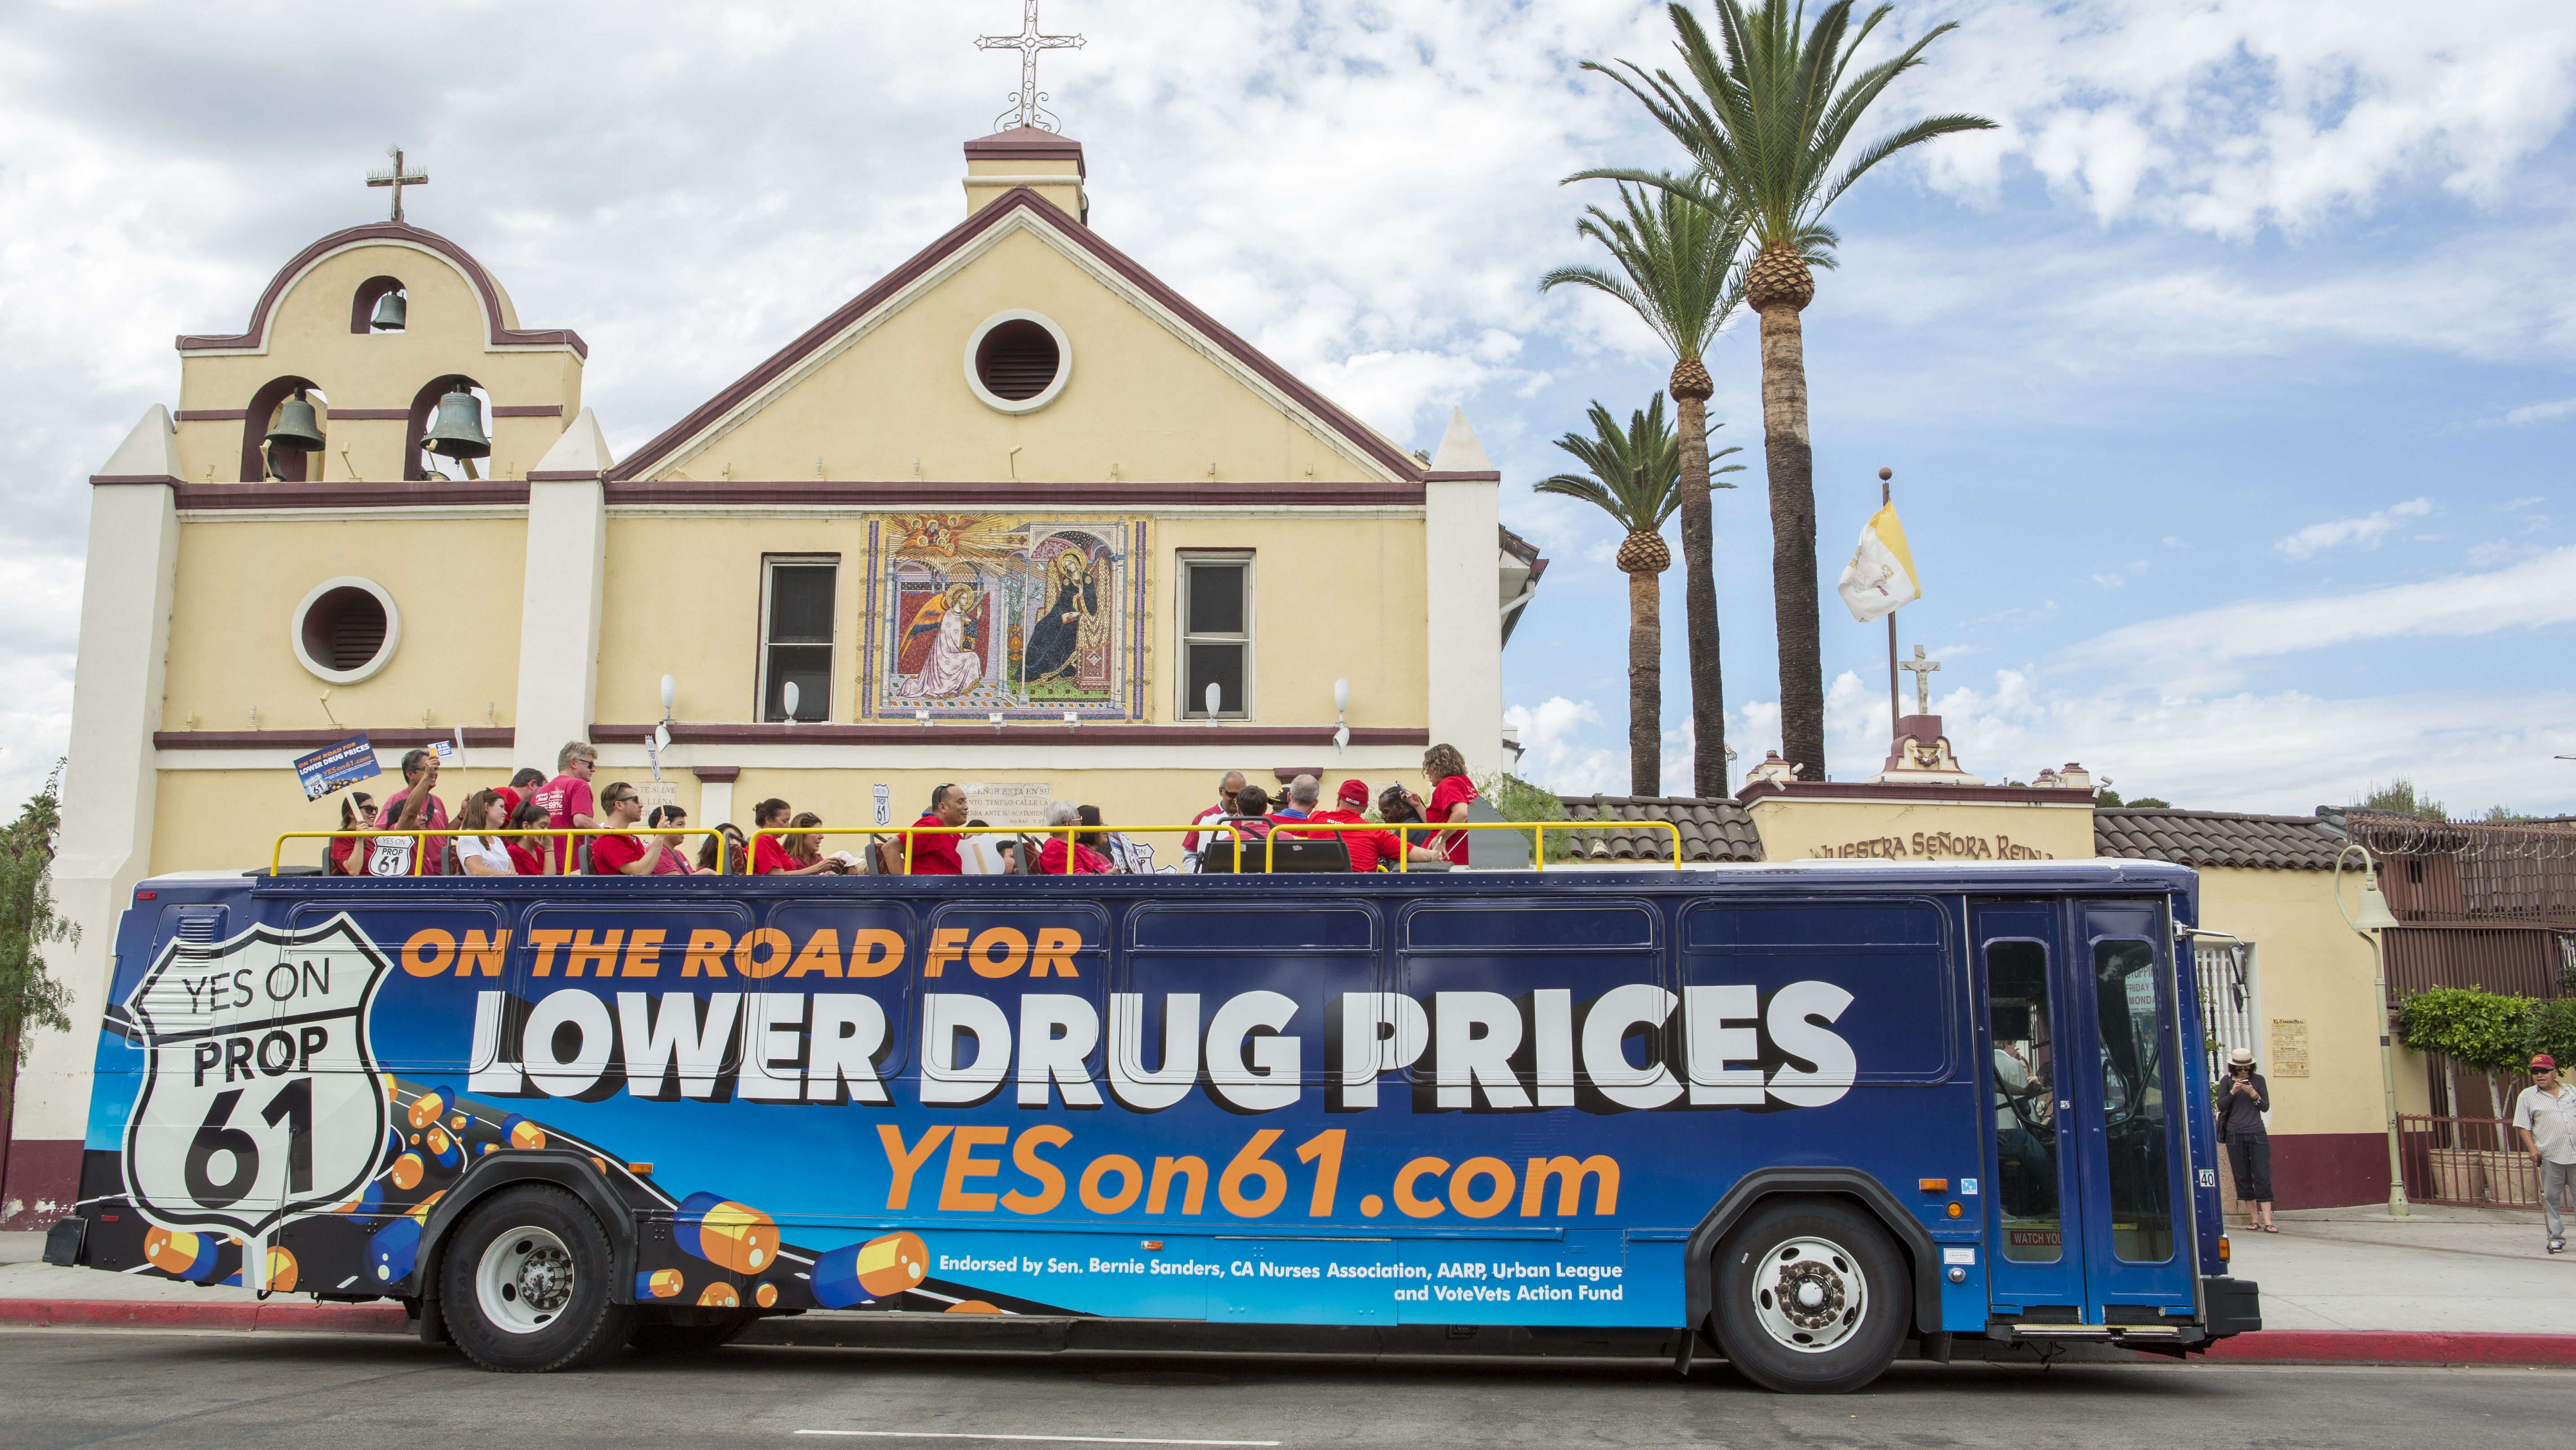 """Supporters of Proposition 61, the California Drug Price Relief Act, ride a double-decker bus in Los Angeles, to launch the """"On the Road for Lower Drug Prices,"""" YES ON 61 Tour across California, on Monday, Sept. 19, 2016. Coalition members, community leaders and supporters laid out how Proposition 61 will lower drug prices"""